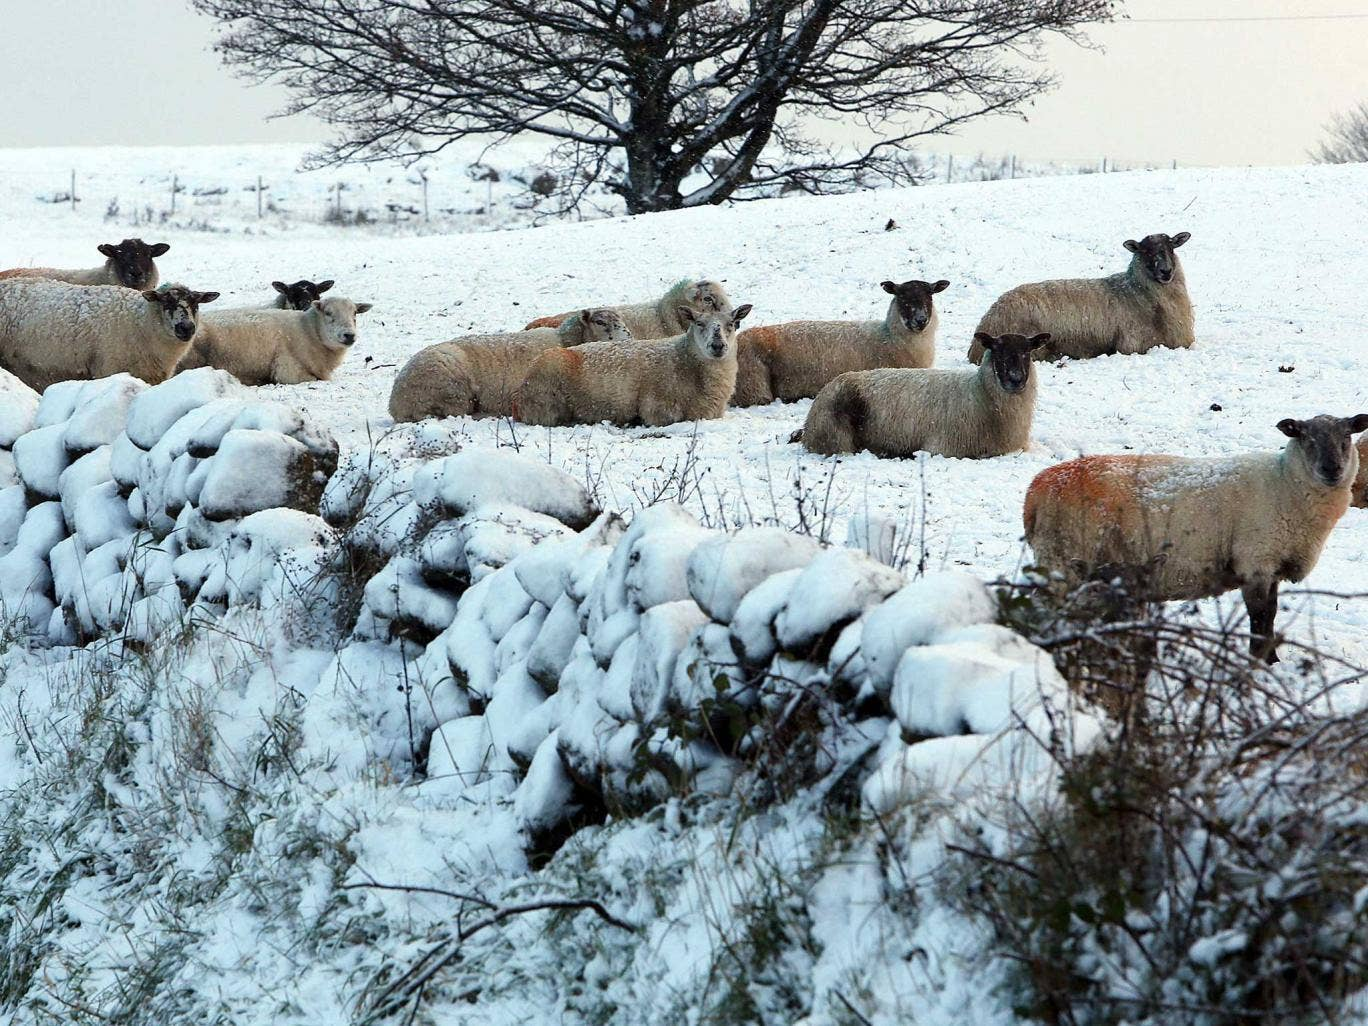 Sheep in the hills above Glenarm in Co Antrim, as the first snowfall of the season covered parts of the county